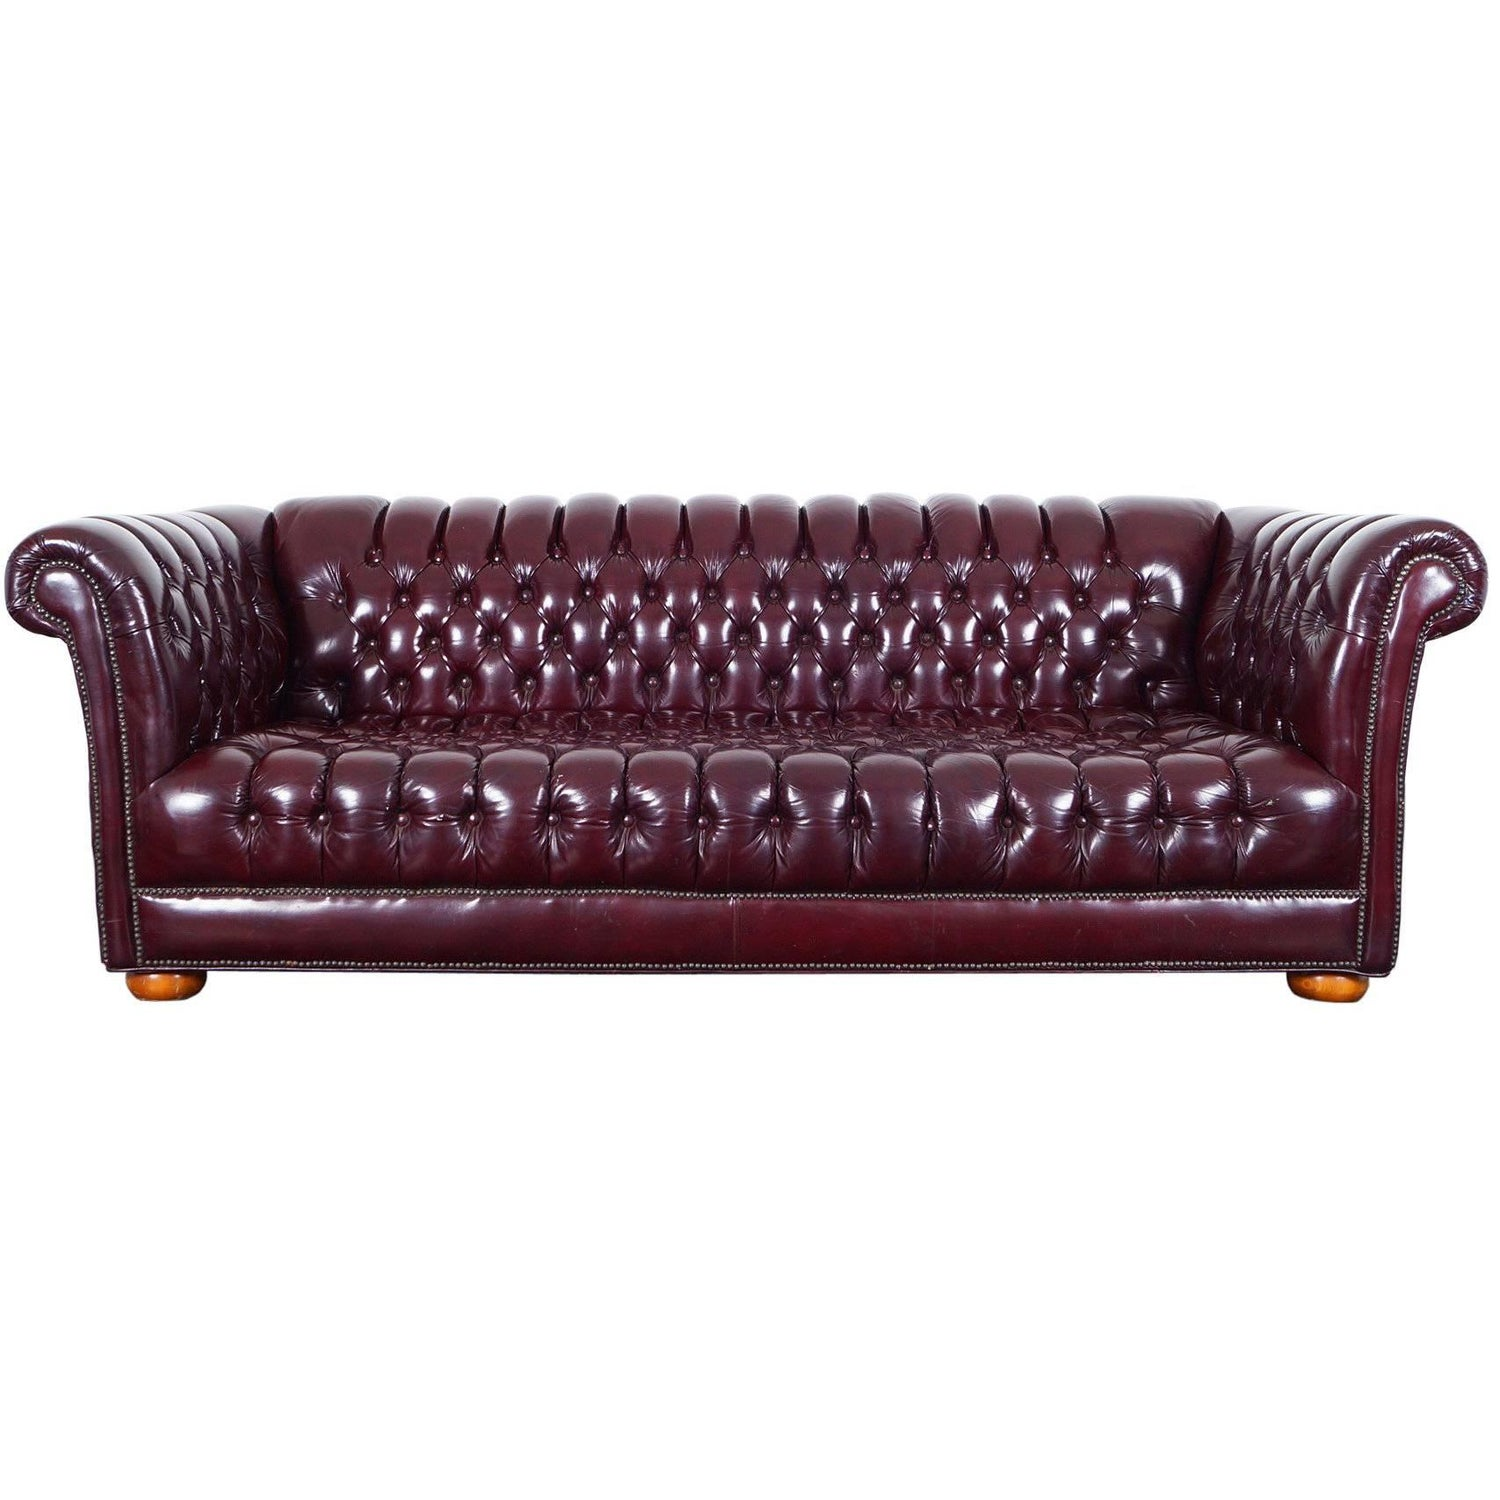 Burgundy Leather-Match Power Reclining Sectional Sofa - Brant